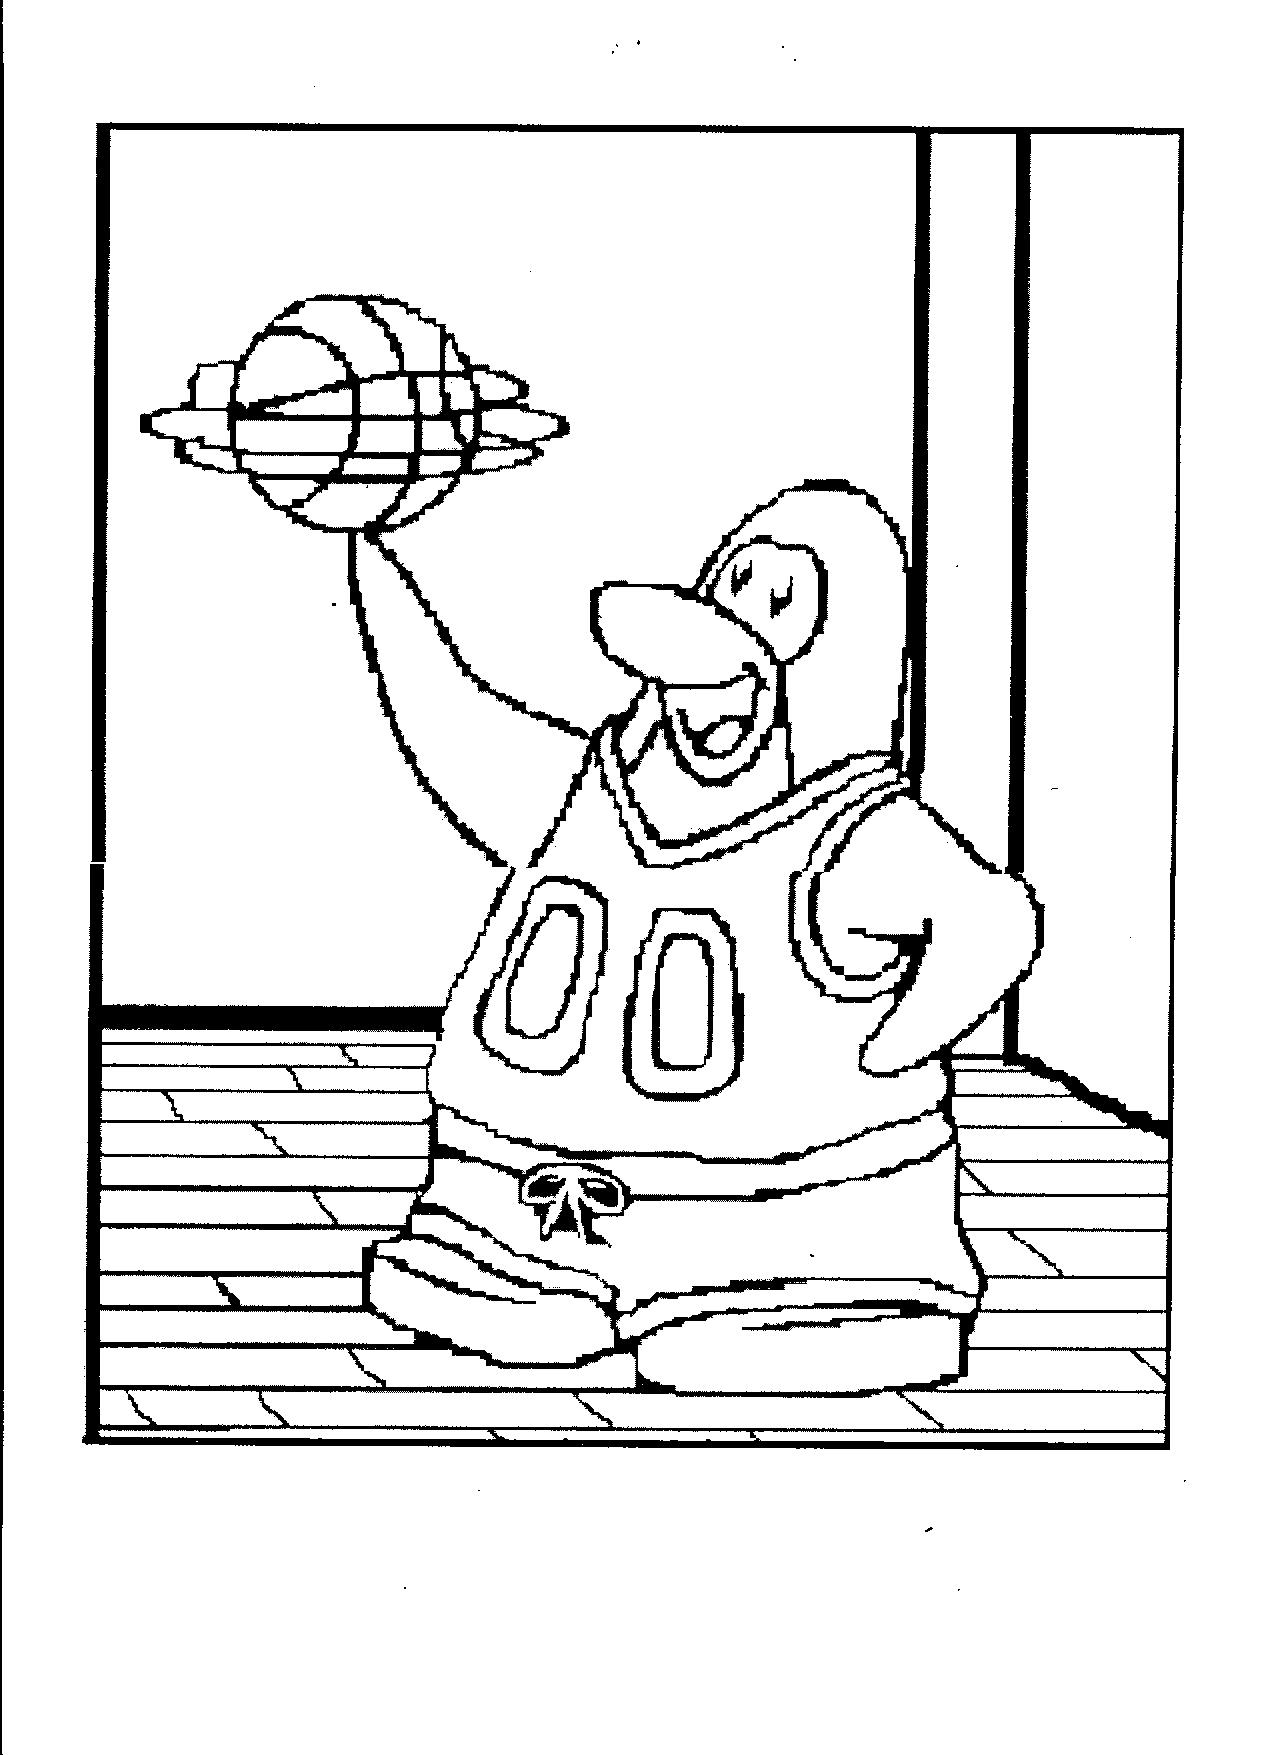 Club penguin coloring pages to download and print for free